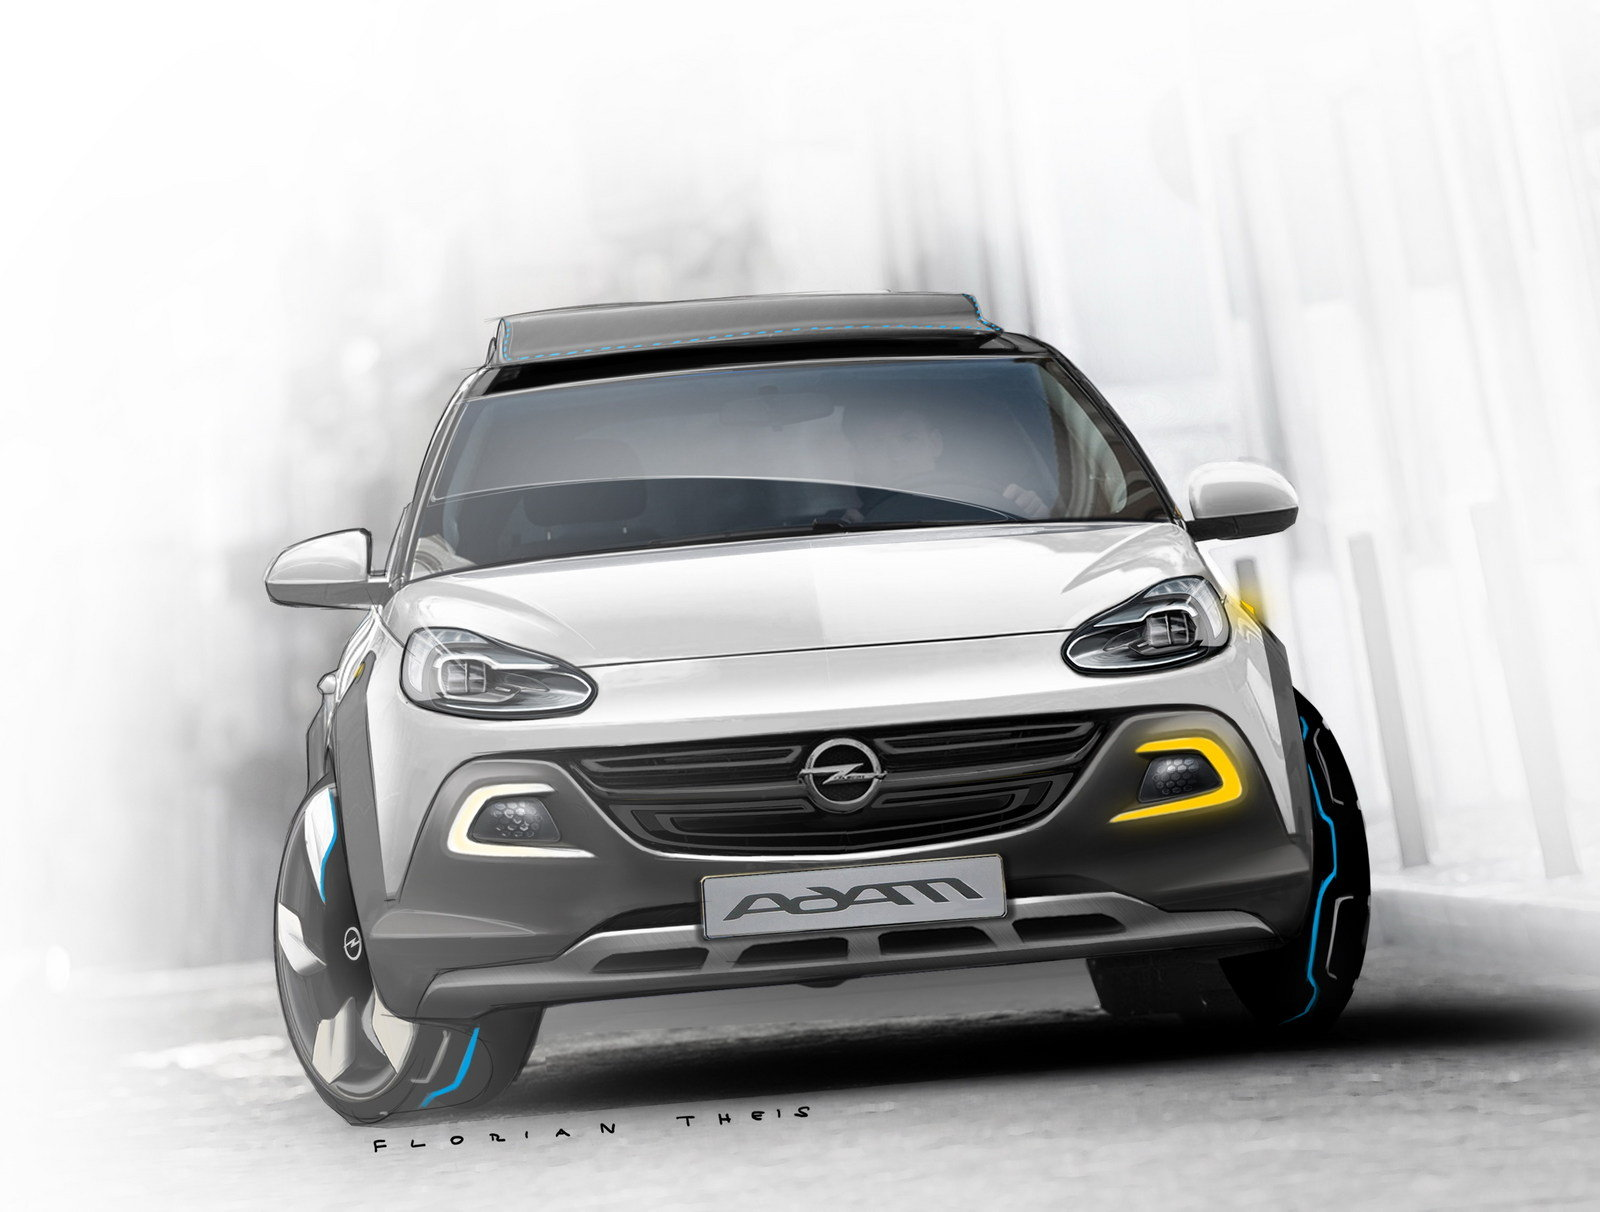 Off Road Design >> 2013 Opel Adam Rocks Concept | Top Speed